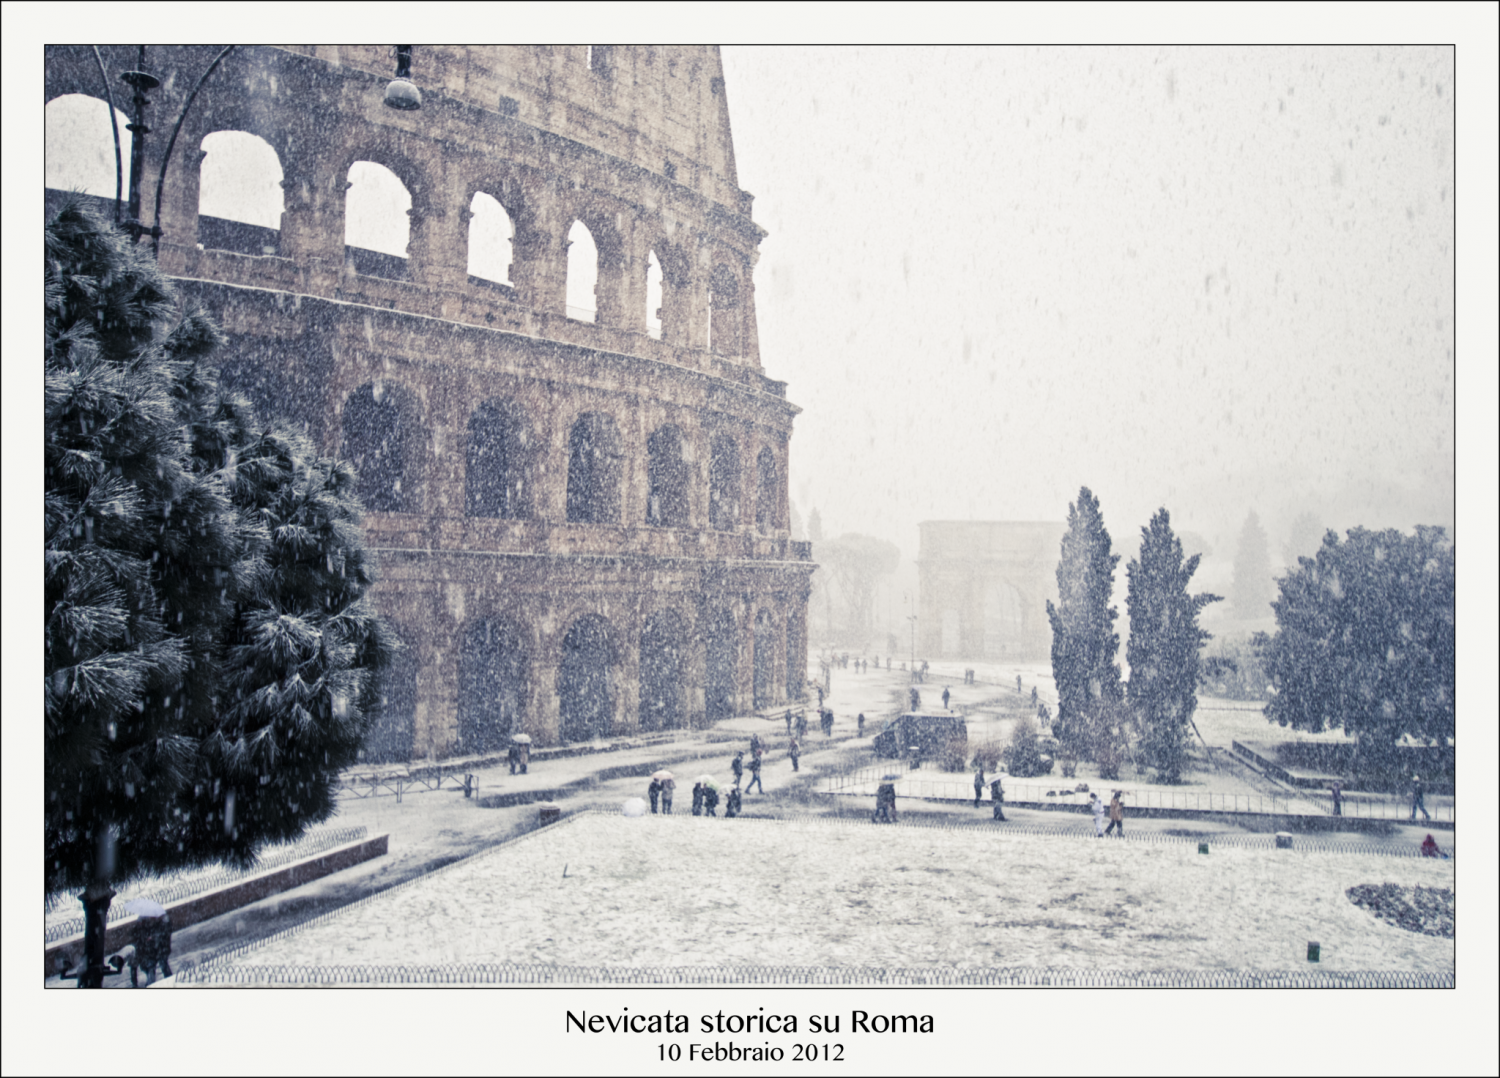 nevicata storica, rome, historic snowfall, italy in winter, winter in italy, travel